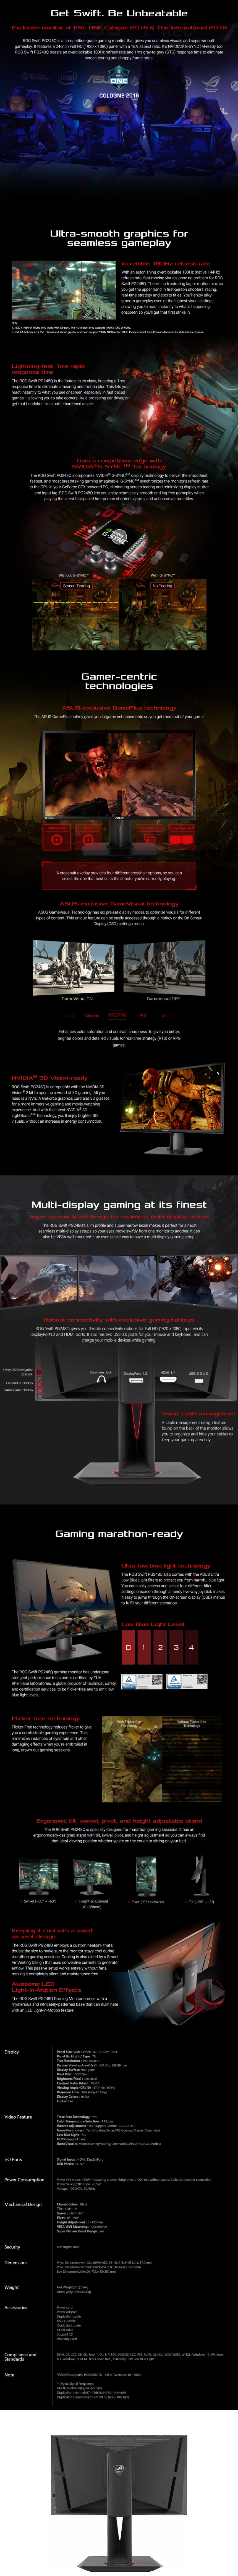 ASUS PG248Q ROG Swift 24in G-SYNC 180Hz Gaming Monitor